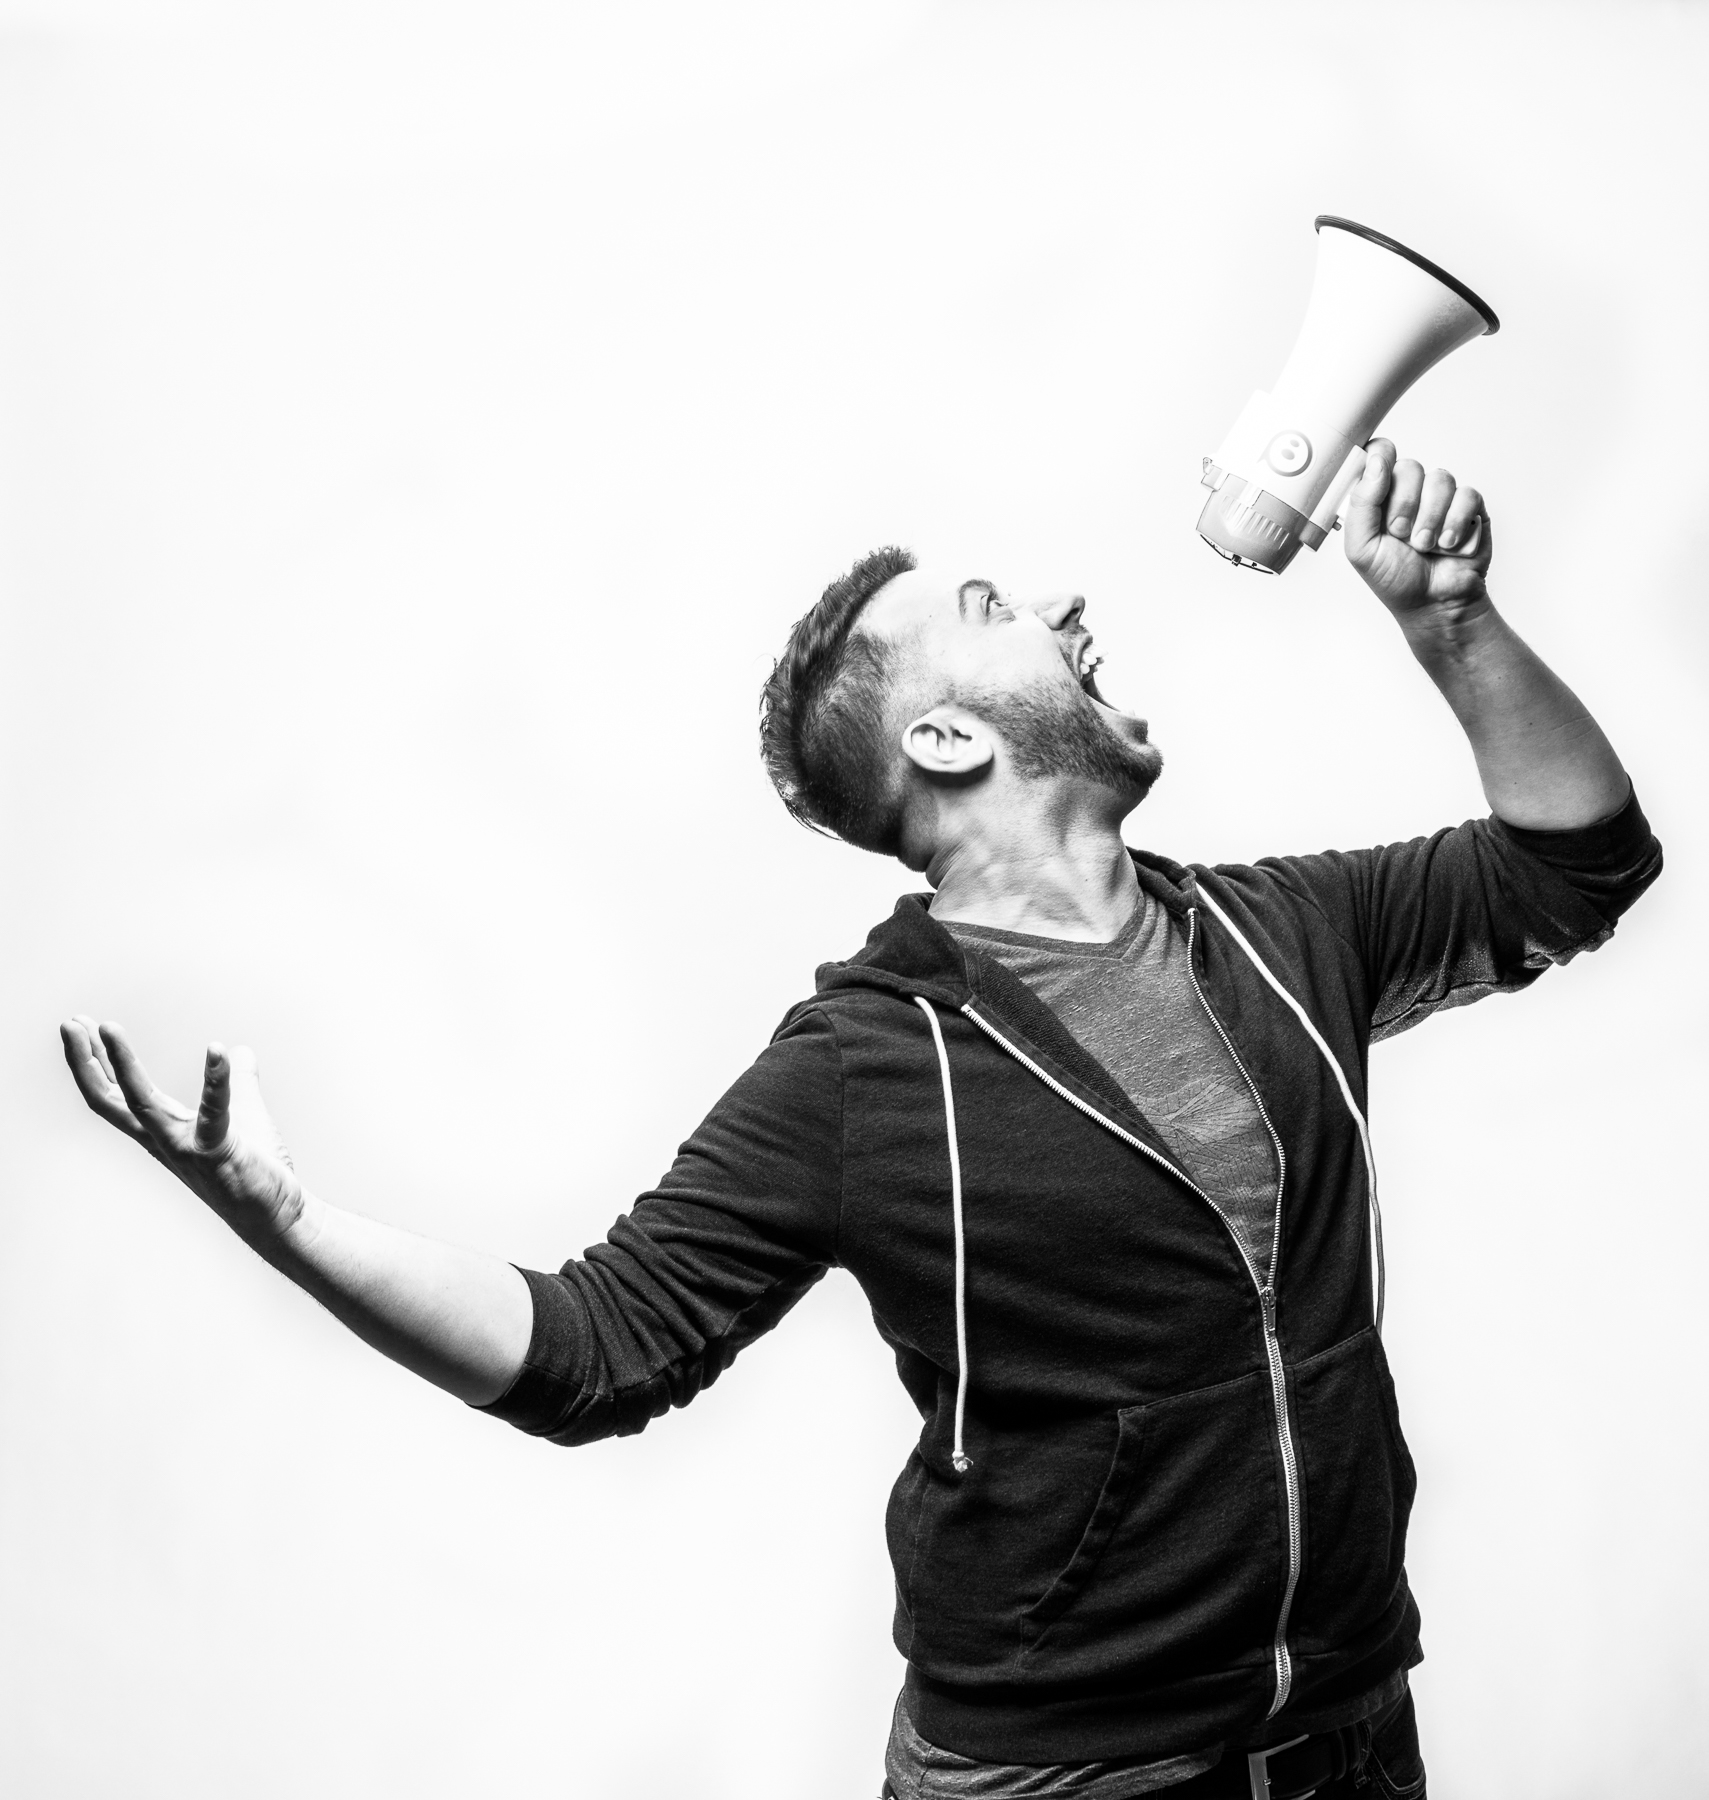 Studio portrait of man shouting into a megaphone in Boulder, Colorado.